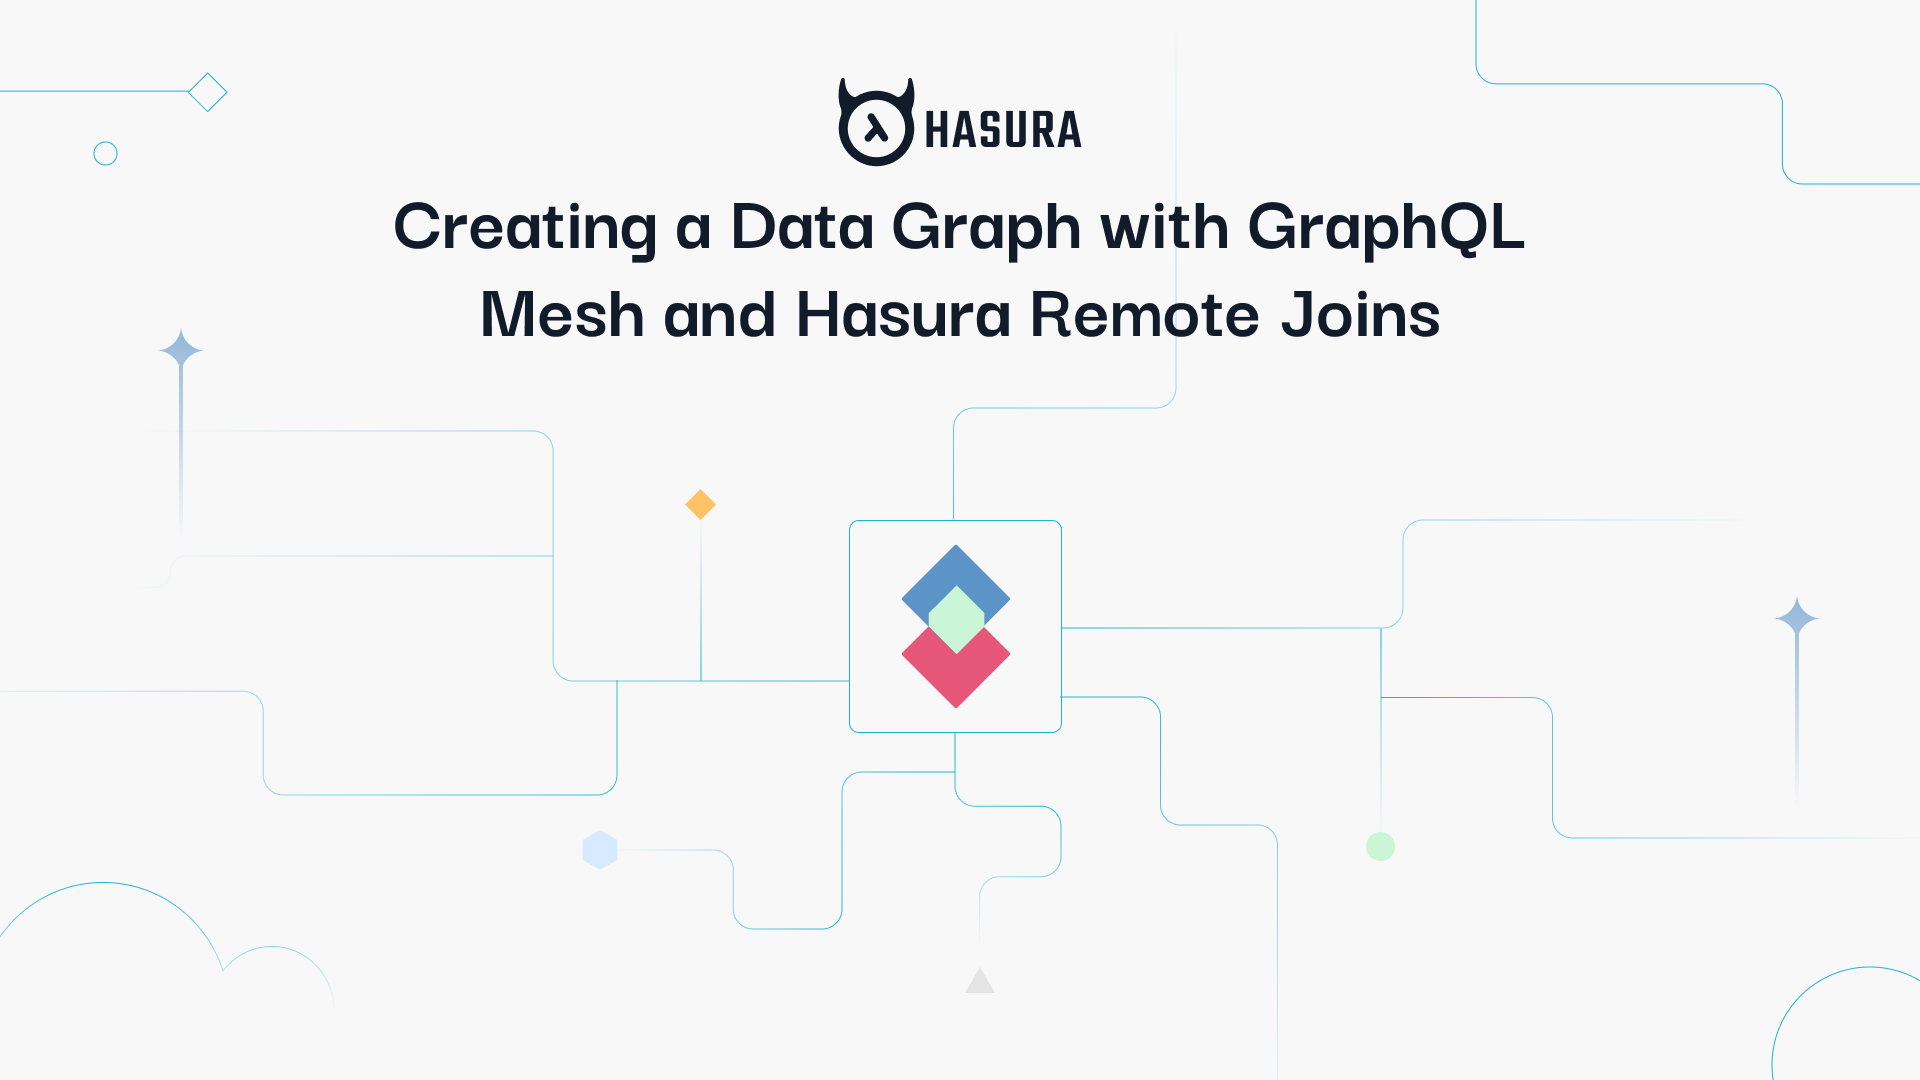 Creating a Data Graph with GraphQL Mesh and Hasura Remote Joins